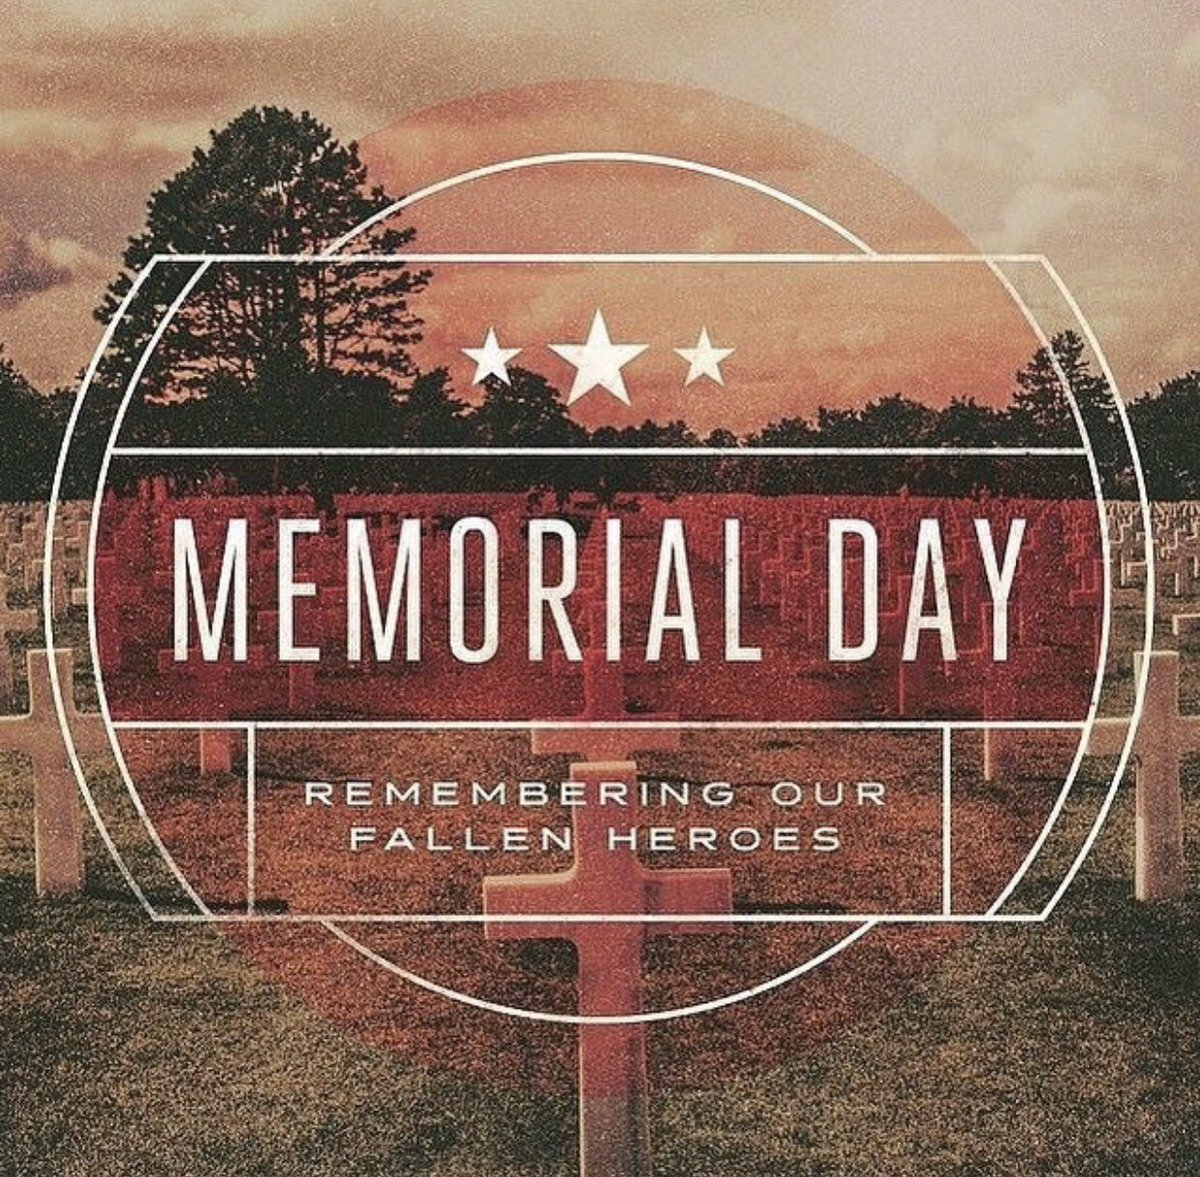 On this #MemorialDay we'd like everyone to take a second to remember what others have done for you 🇺🇸 https://t.co/6e57Q0P1cN